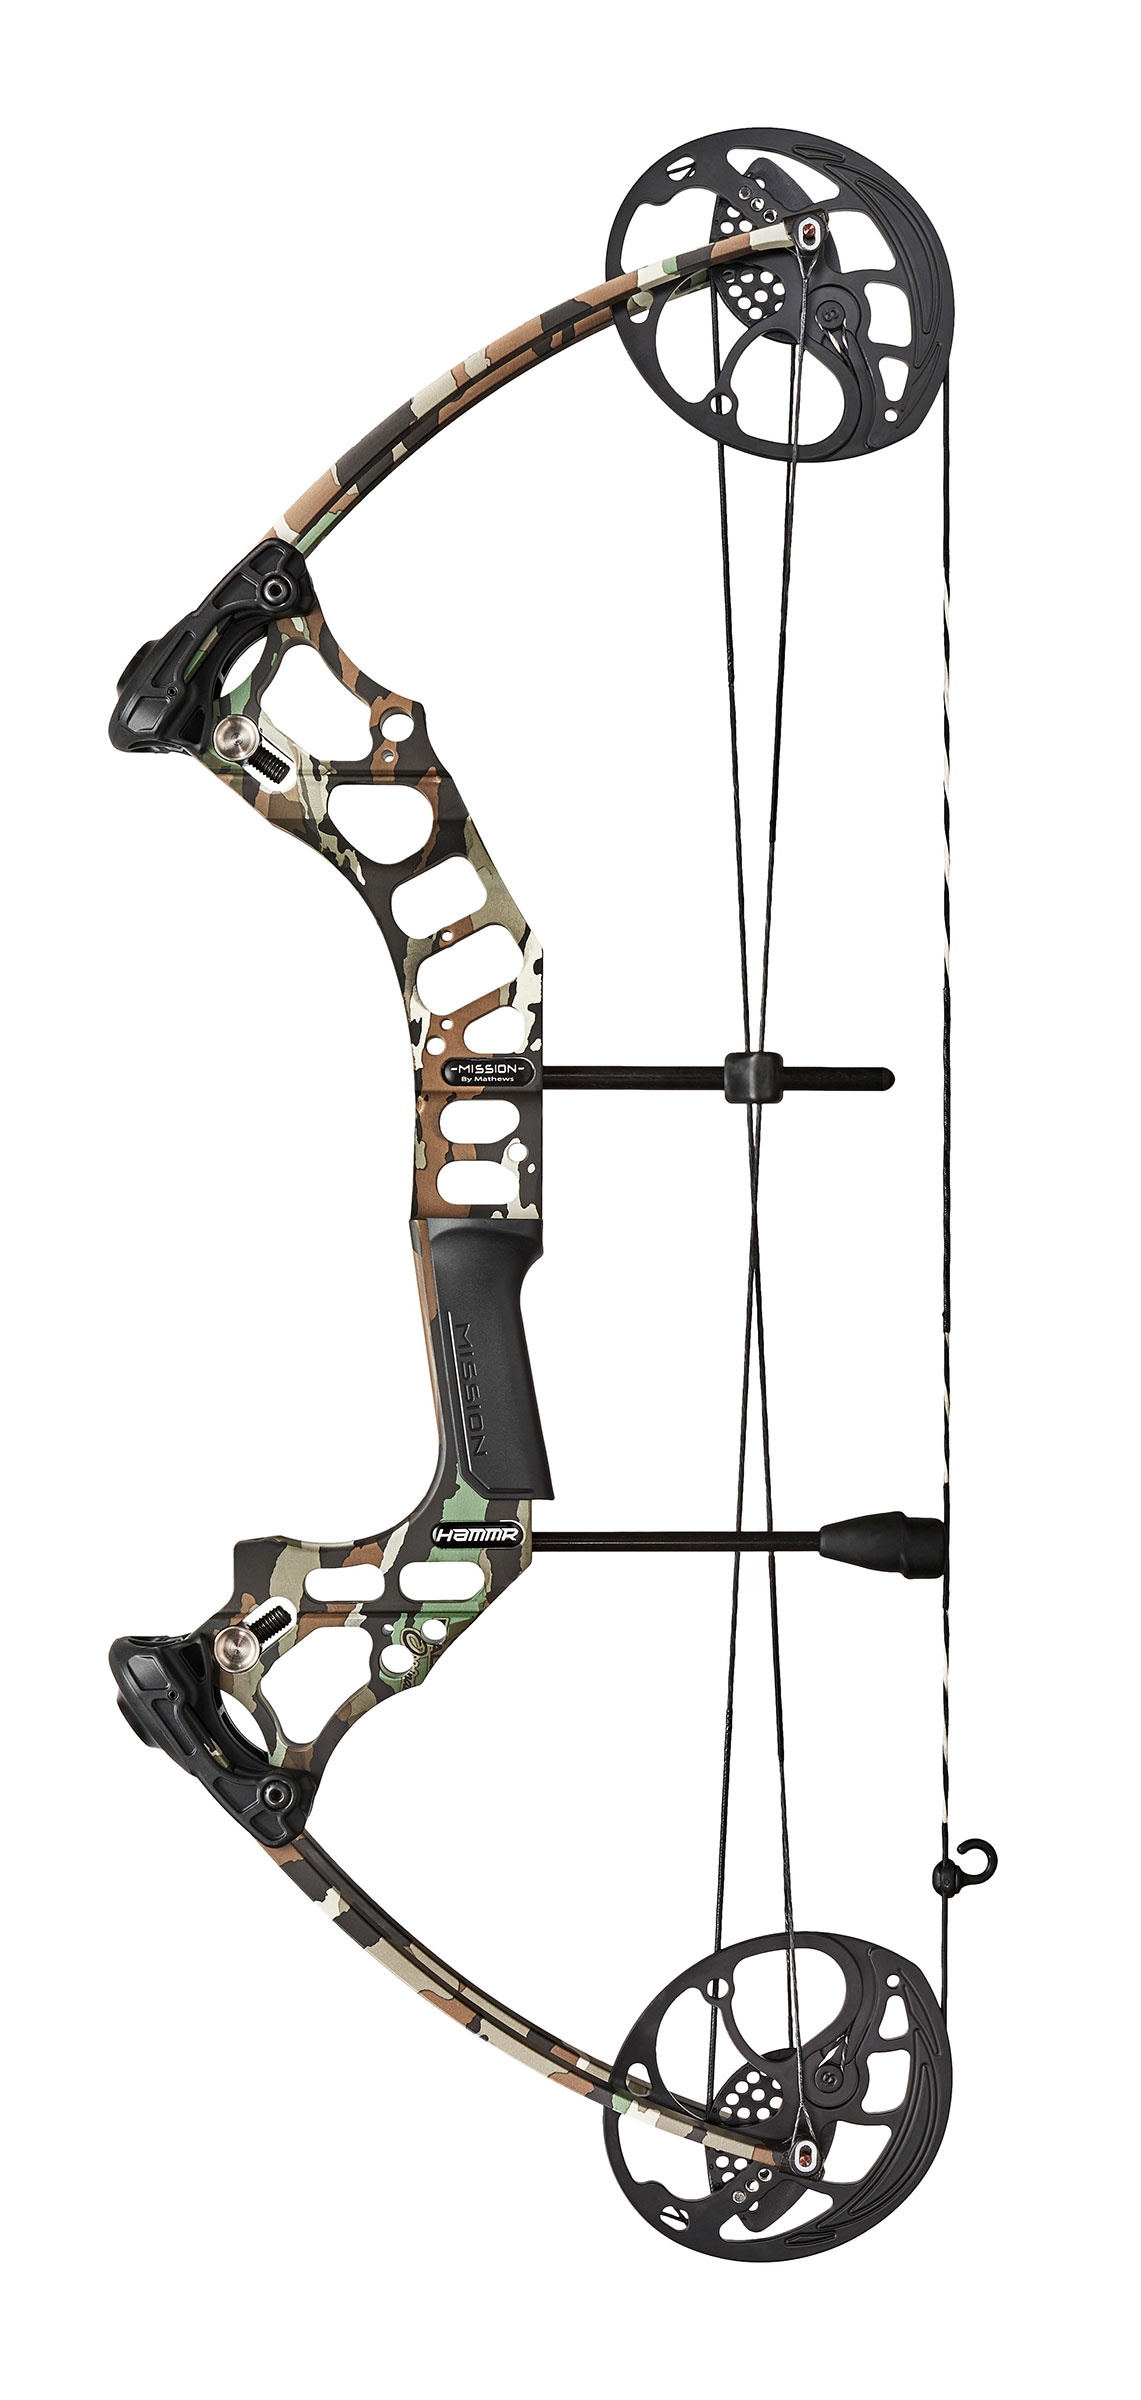 performance and adjustability - the perfect solution for growing archers